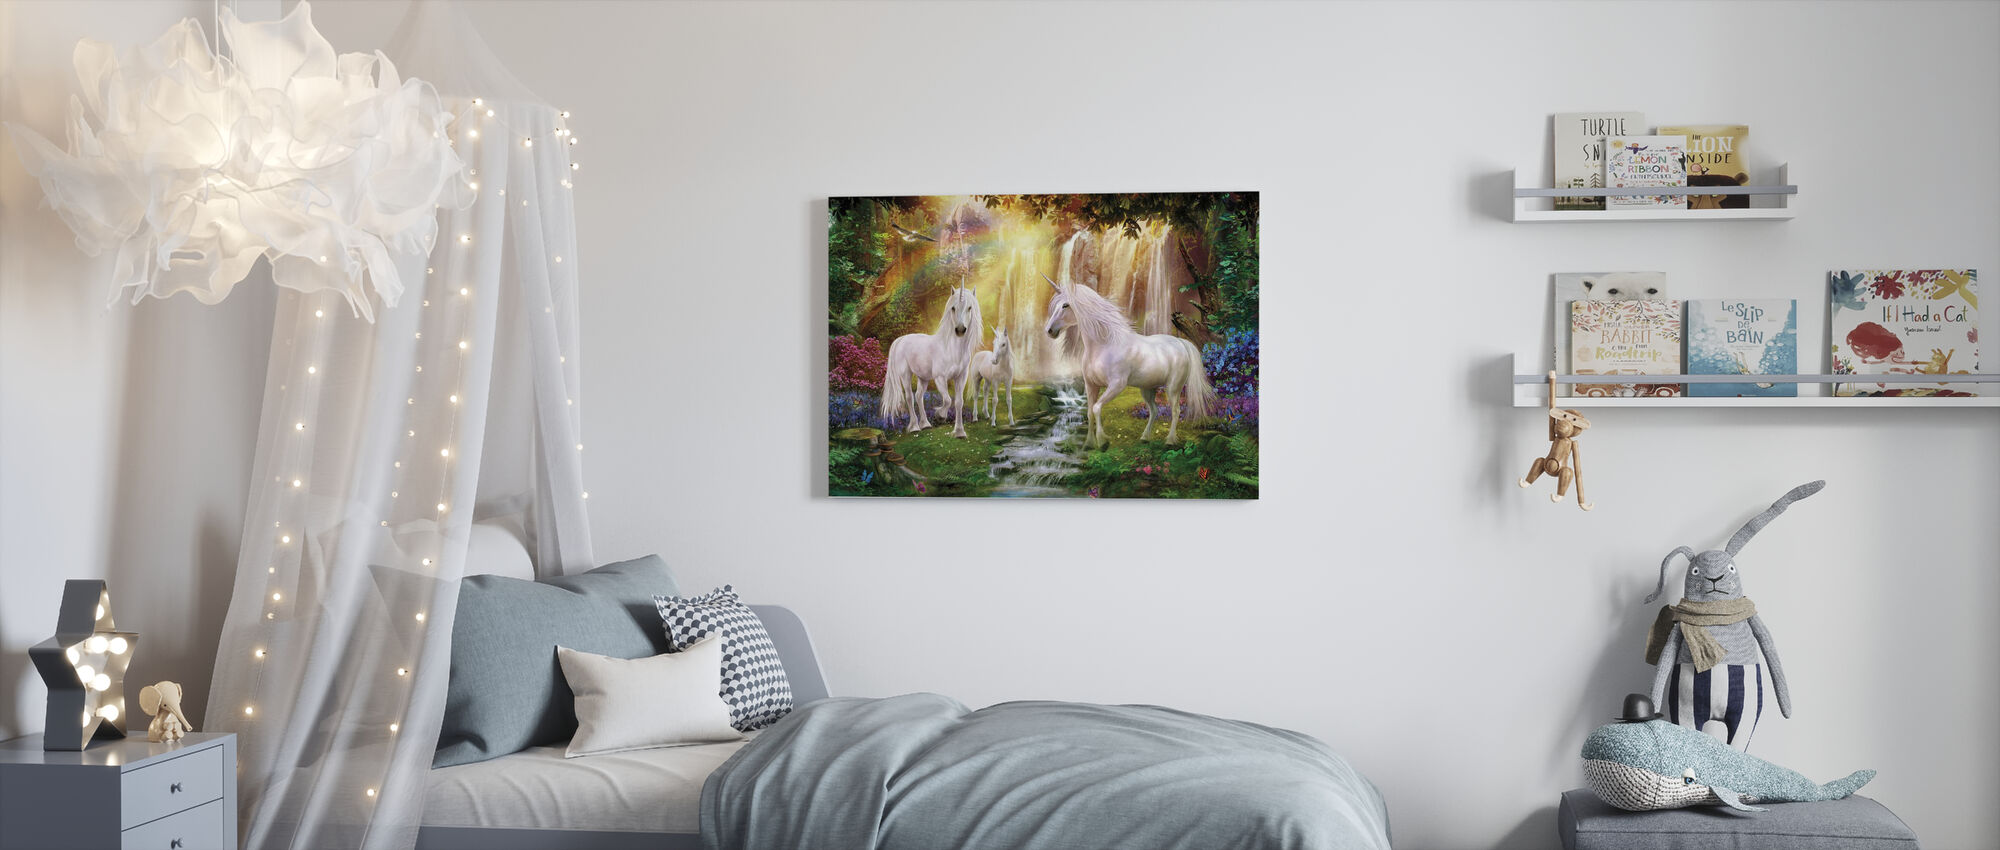 Waterfall Glade Unicorns - Canvas print - Kids Room